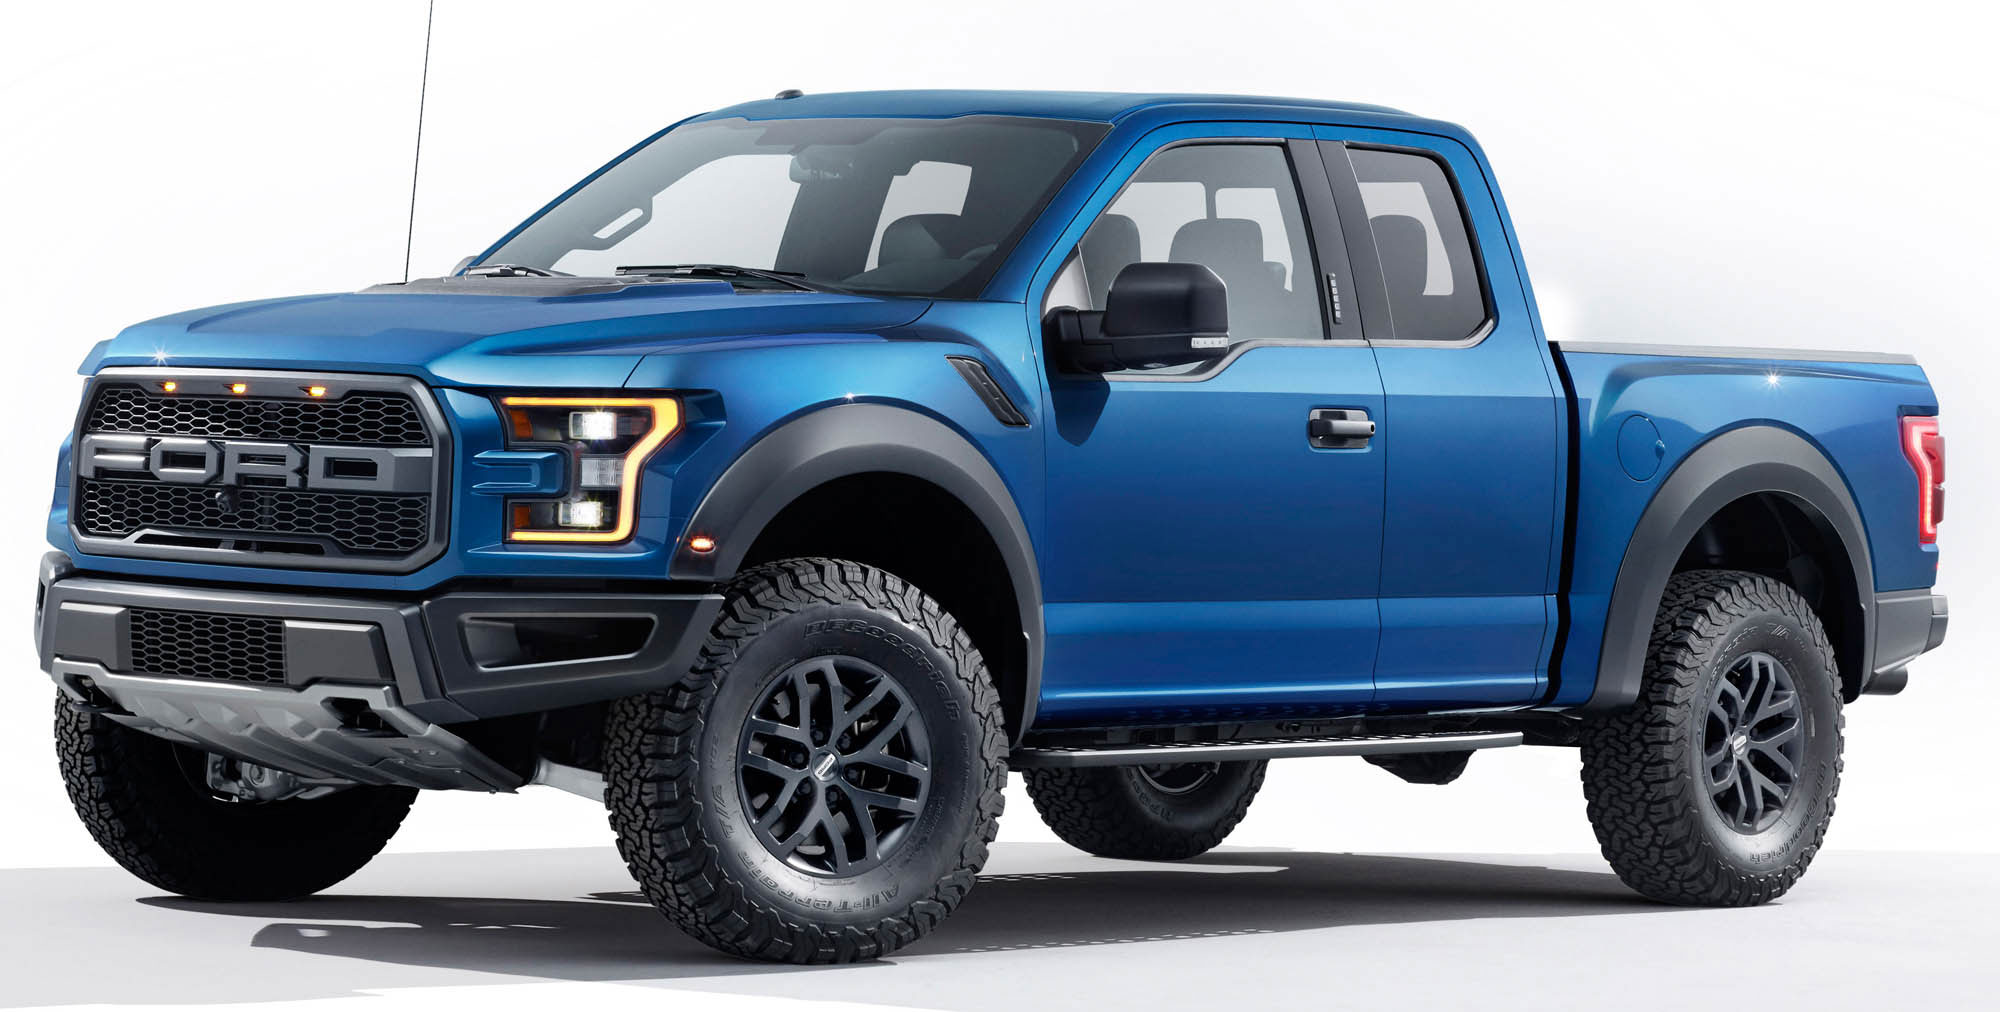 Roush Raptor 2018 >> 2016 Ford F-150 Raptor – a high performance pickup truck with turbo power and ten-speed ...